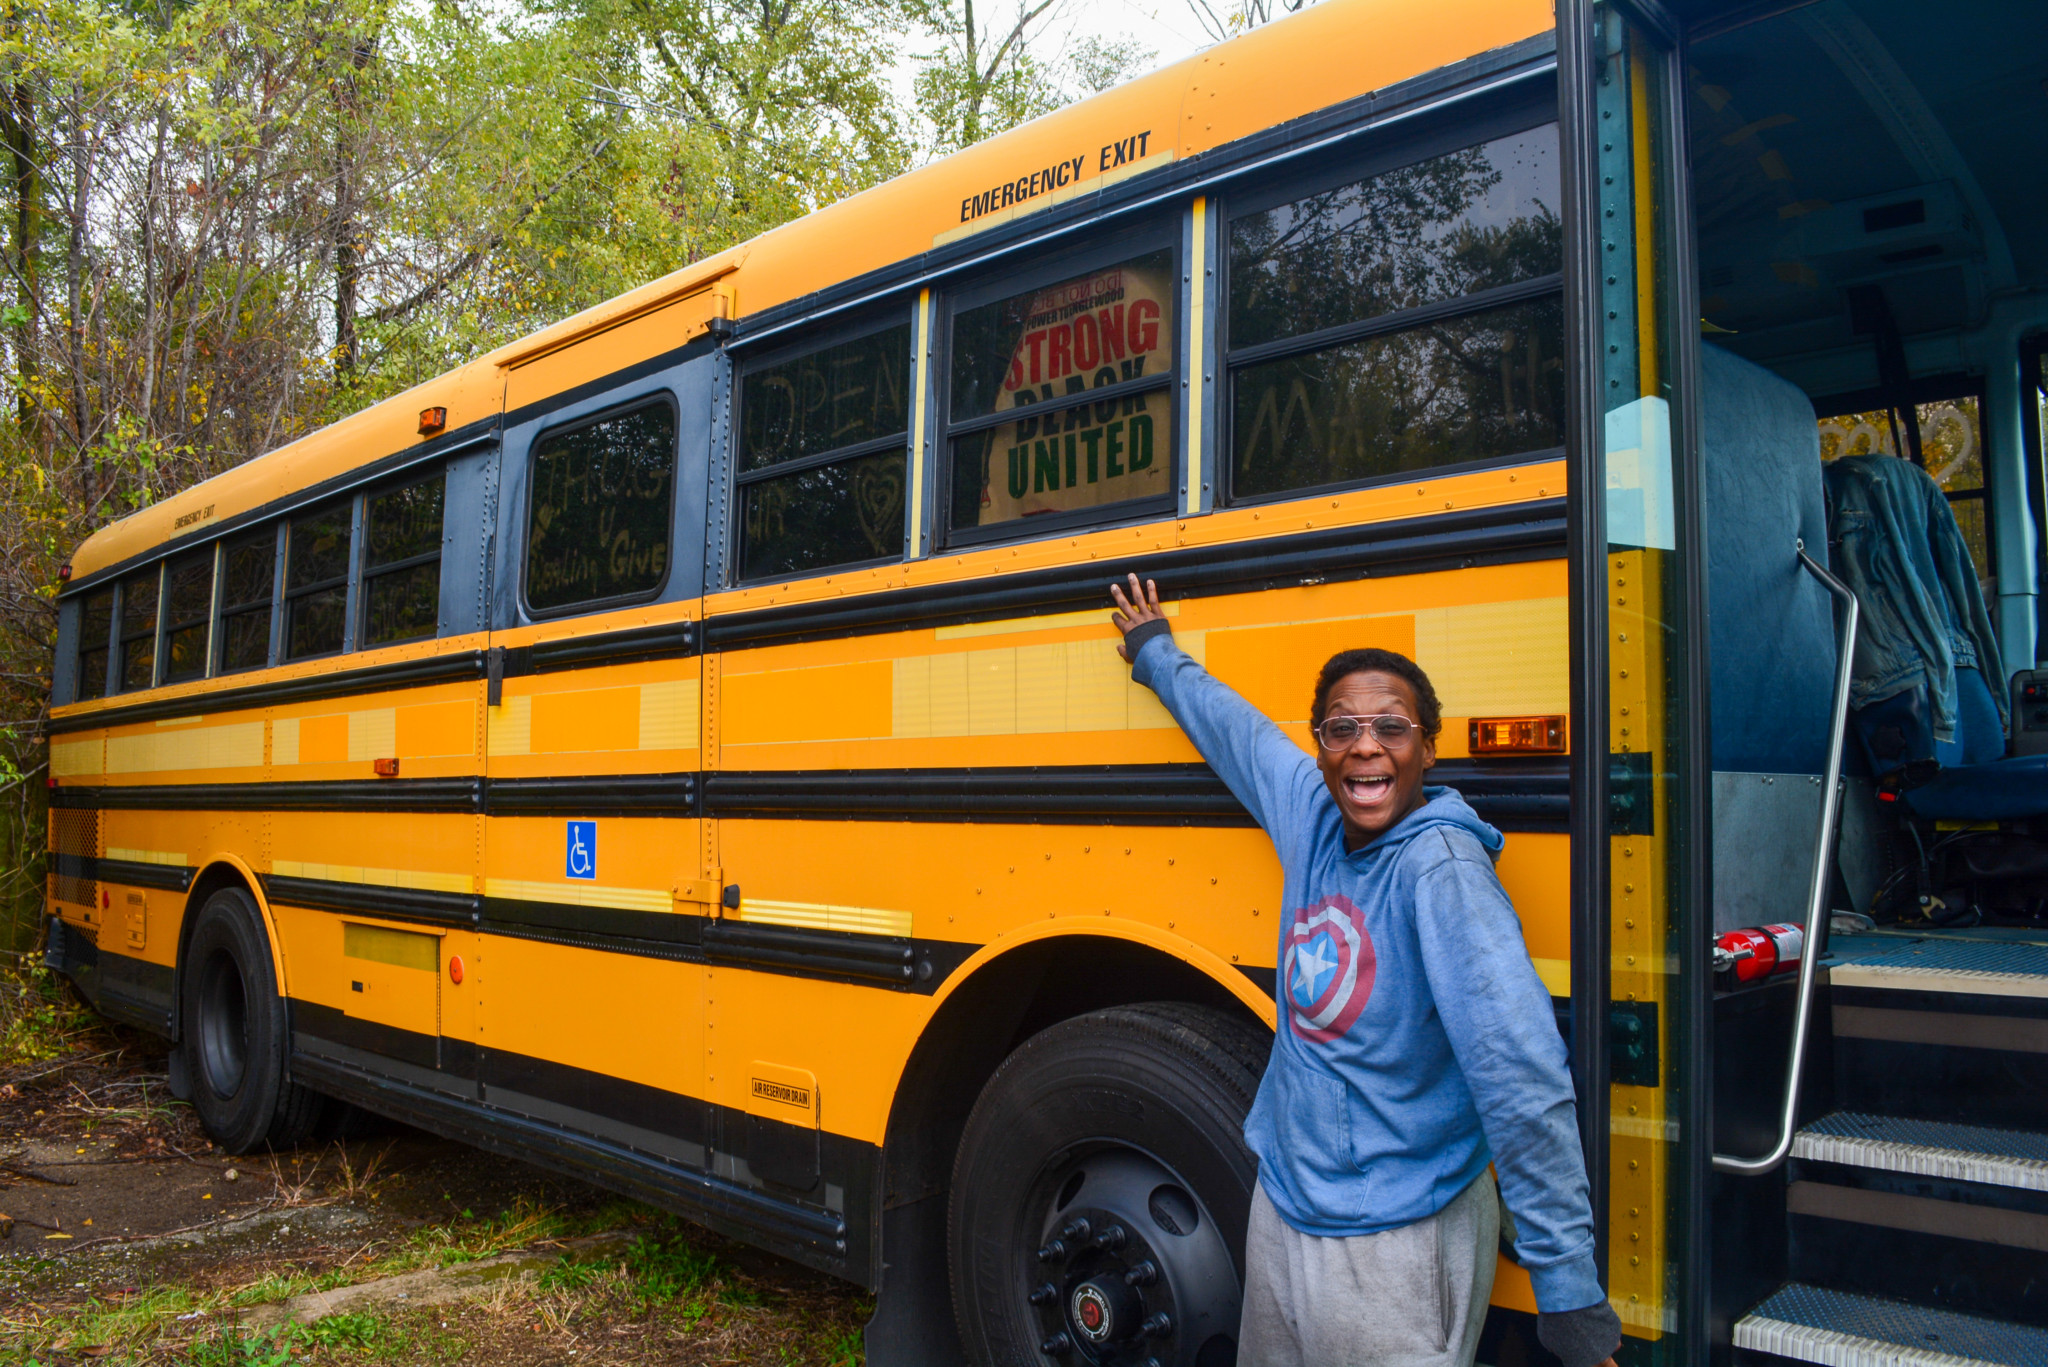 E A Williams. Thug Hippie Bus. Photo Credit: Brittany Norment